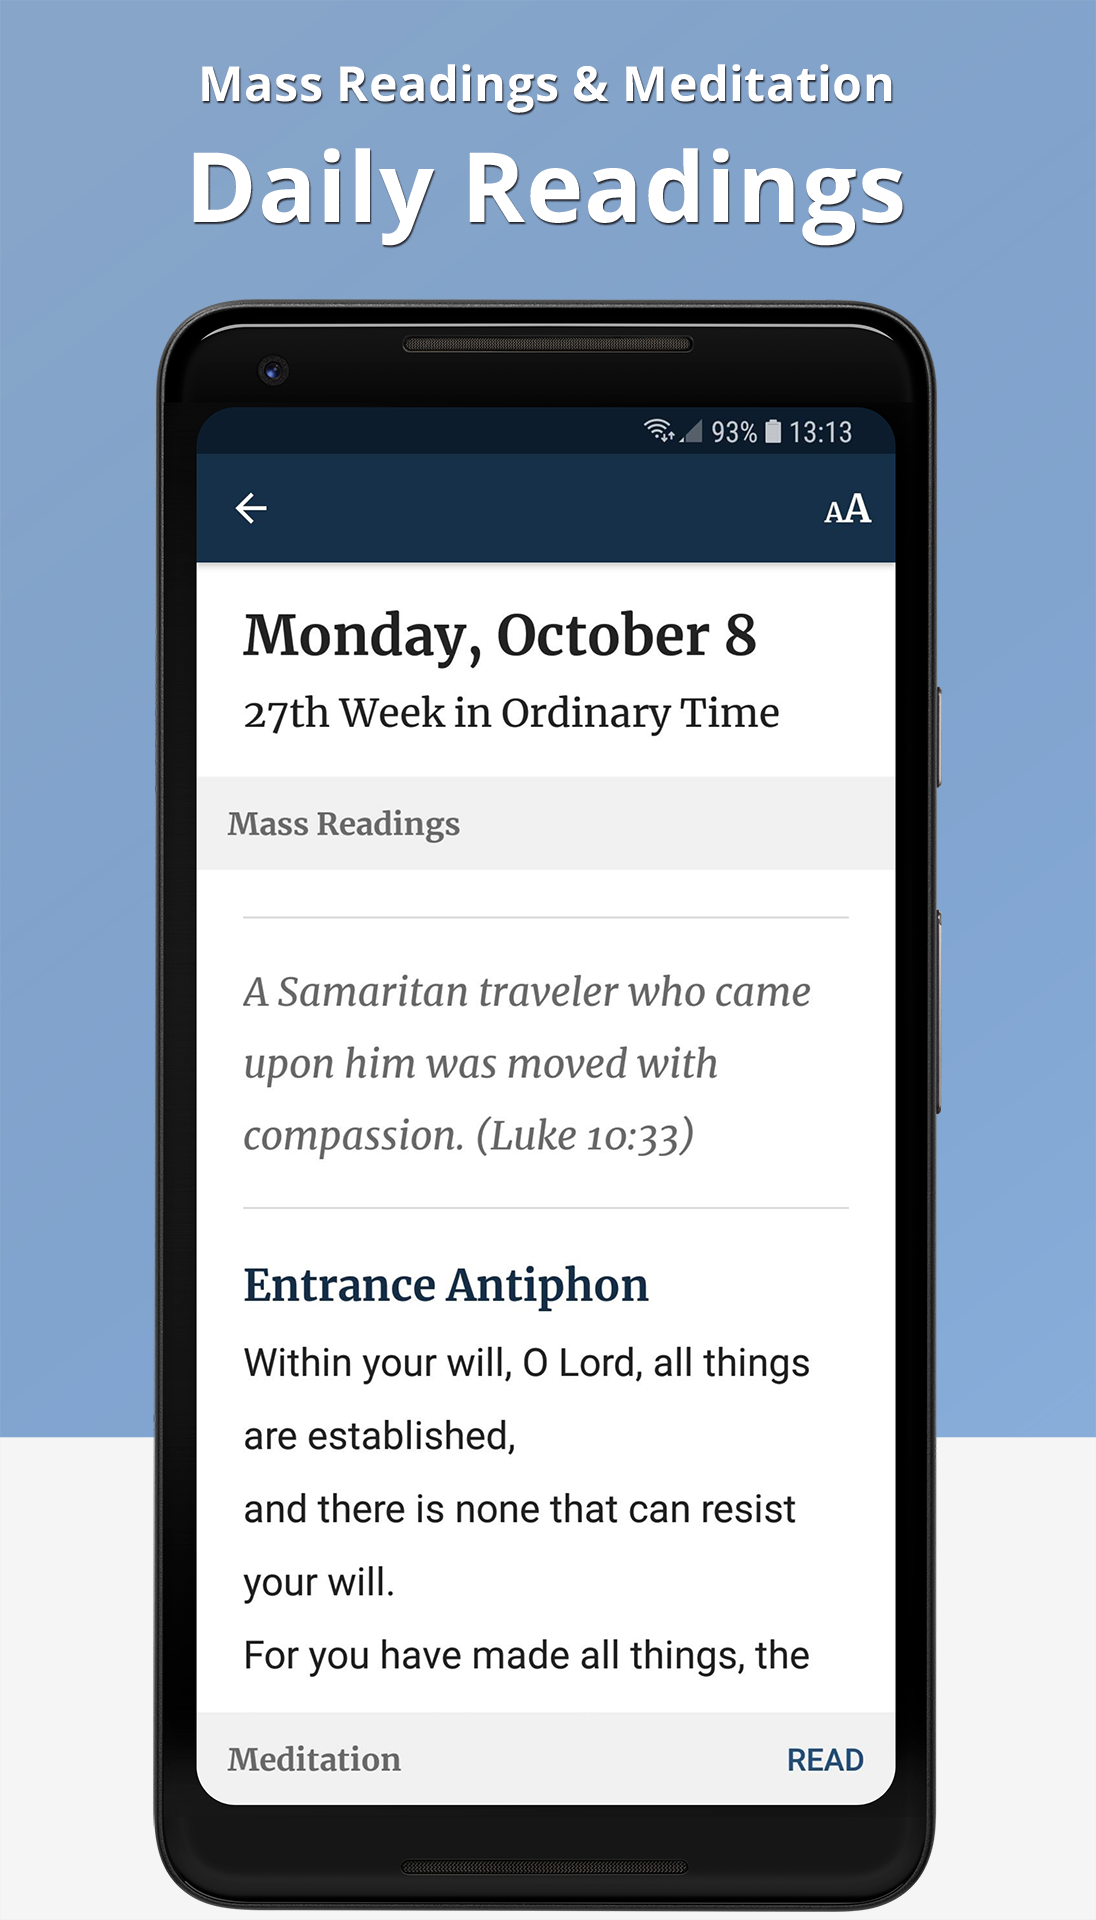 The Word Among Us Android App - Daily Mass Readings Screen